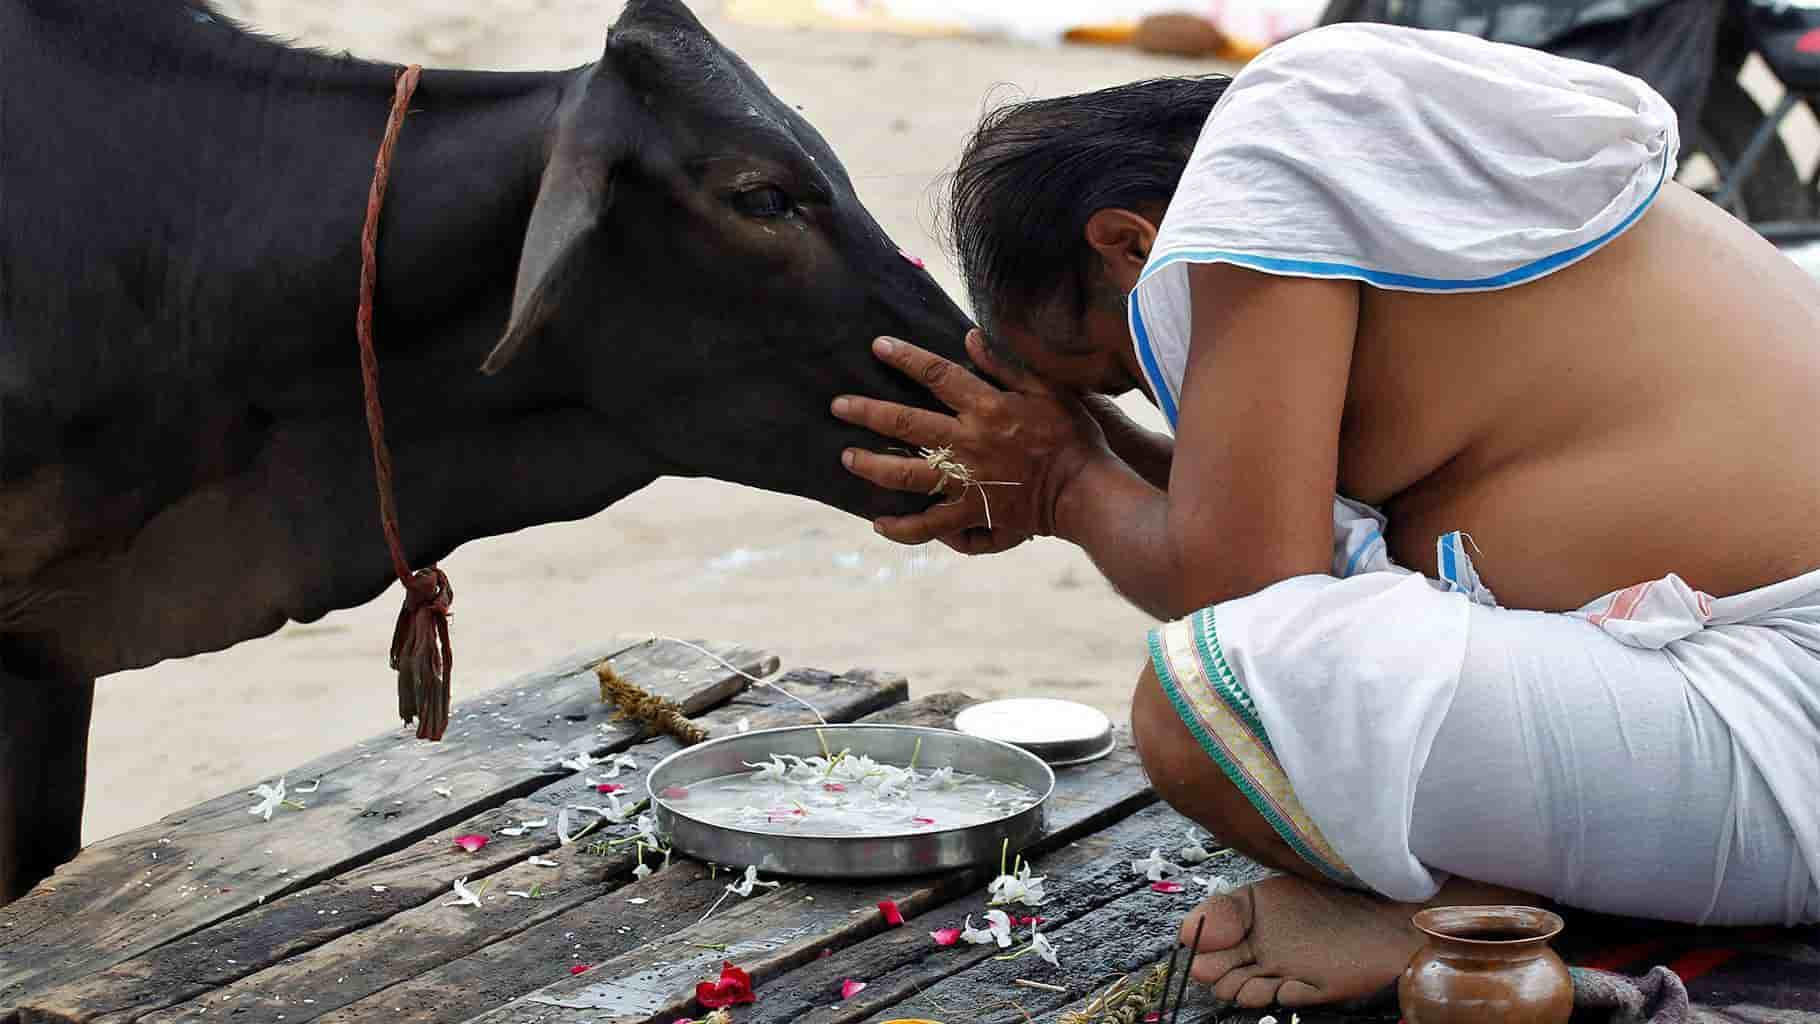 worshiping cow in india